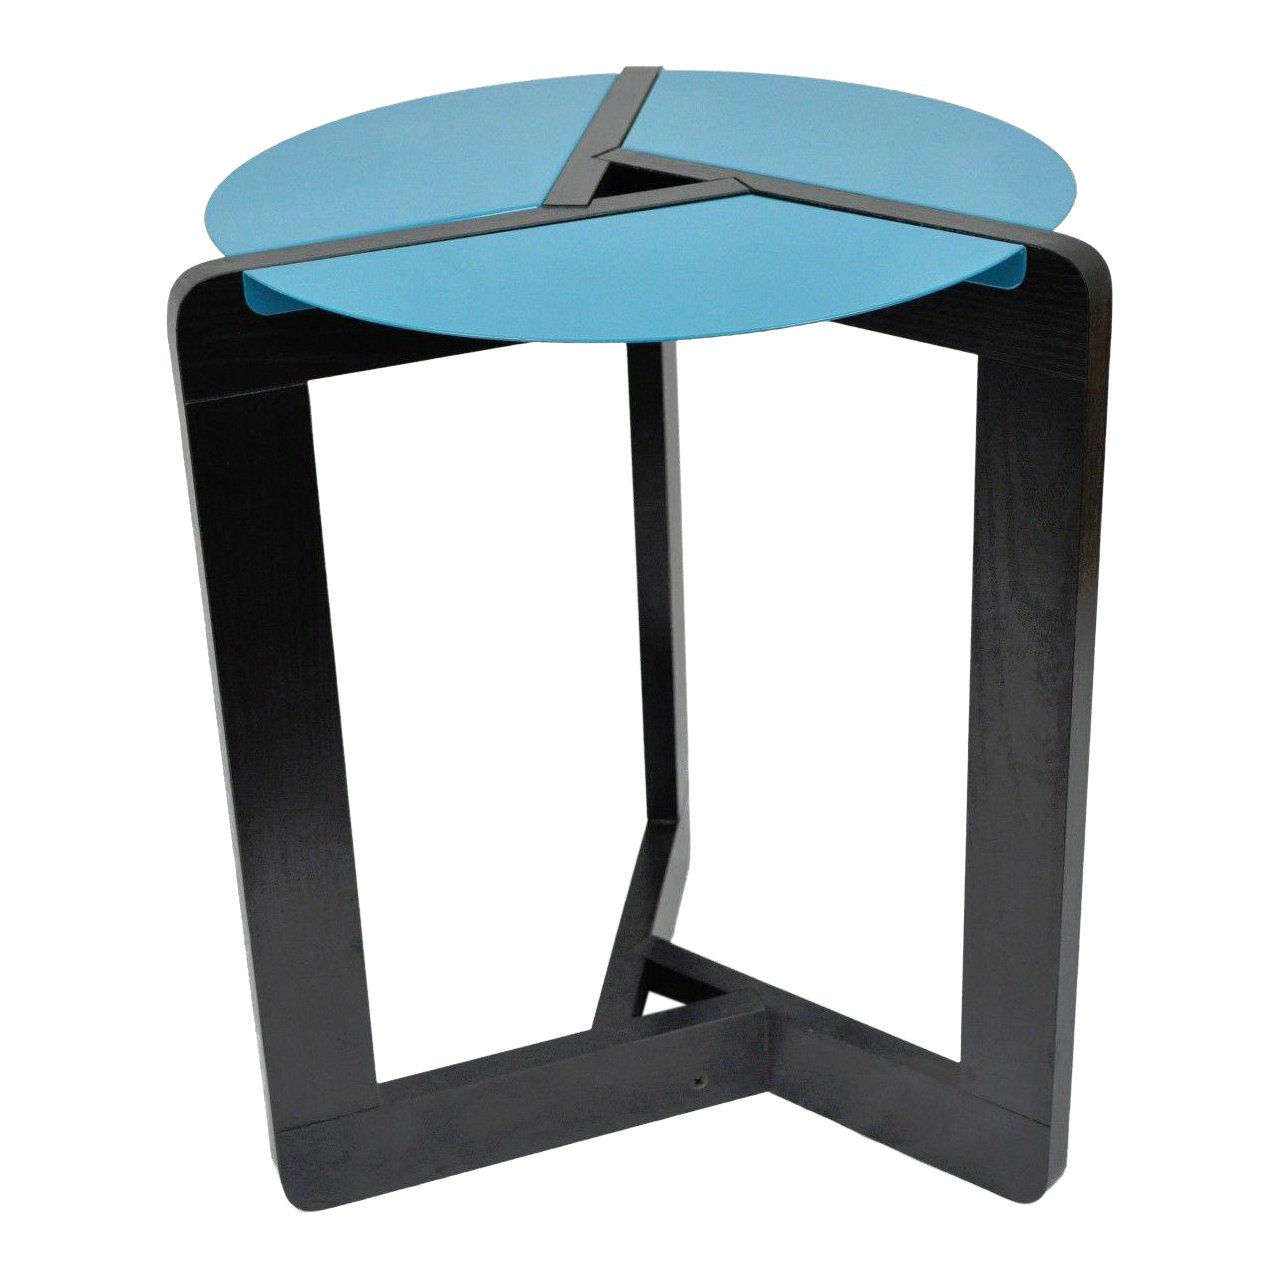 memphis style post mid century modern black blue metal round side and accent table chairish target pink marble pebble light wood end tables patio tiles credenza furniture ice